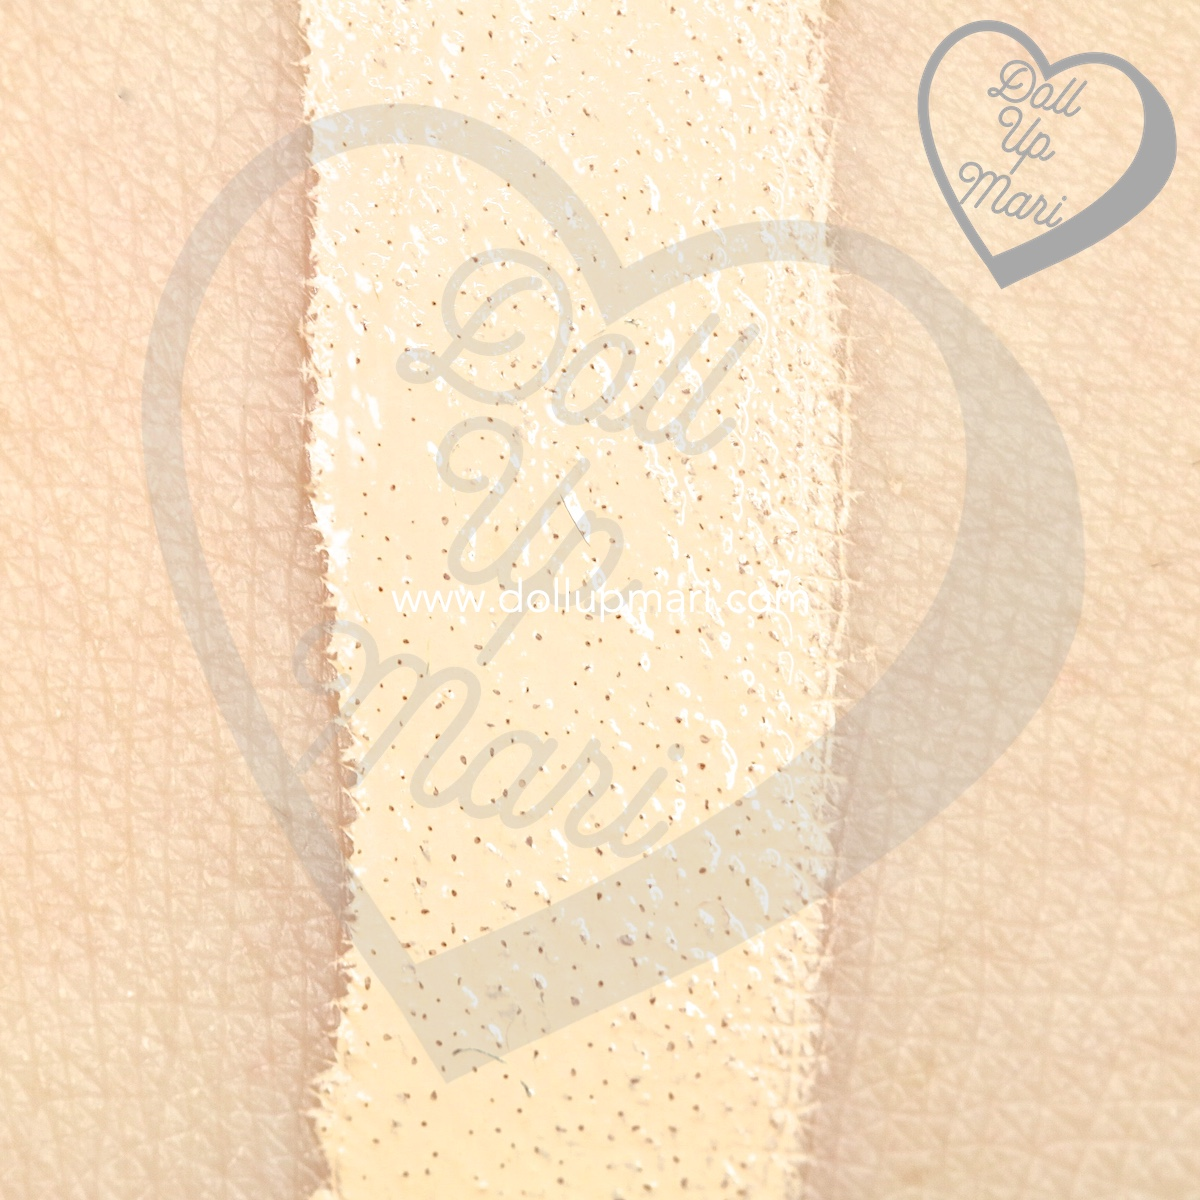 Swatch of L'Oréal Paris Infallible 24HR Fresh Wear Liquid Foundation SPF25PA+++ in shade Ivory